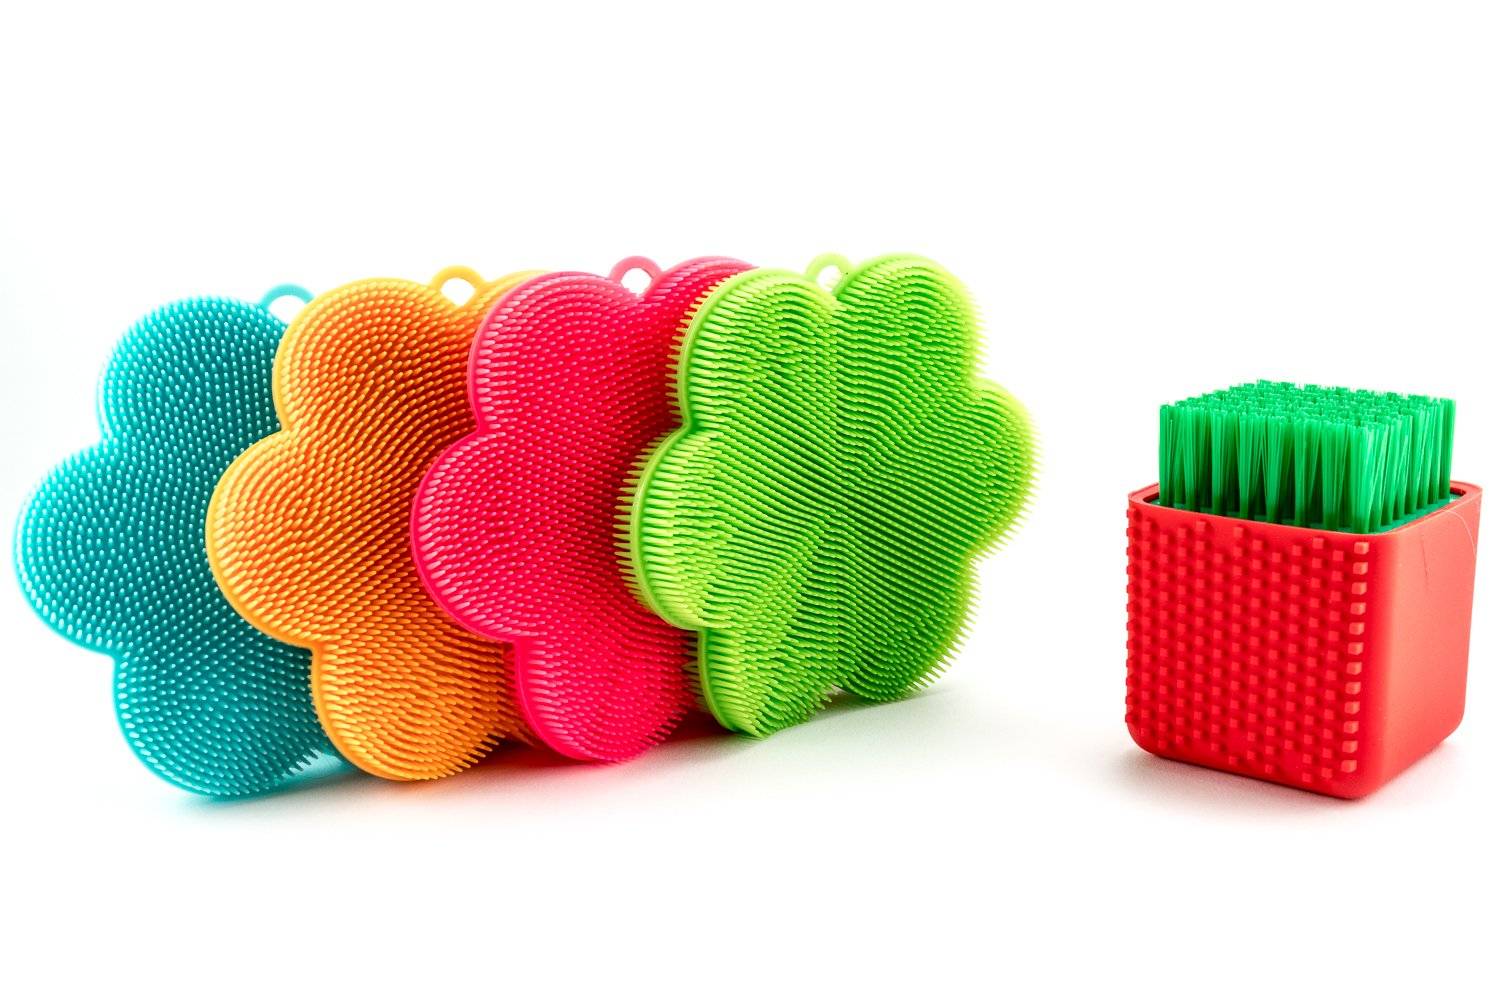 Premium Food Grade Silicone Scrubber and Brush for Cleaning (4 pc + Silicone Brush) | Antibacterial and BPA-free